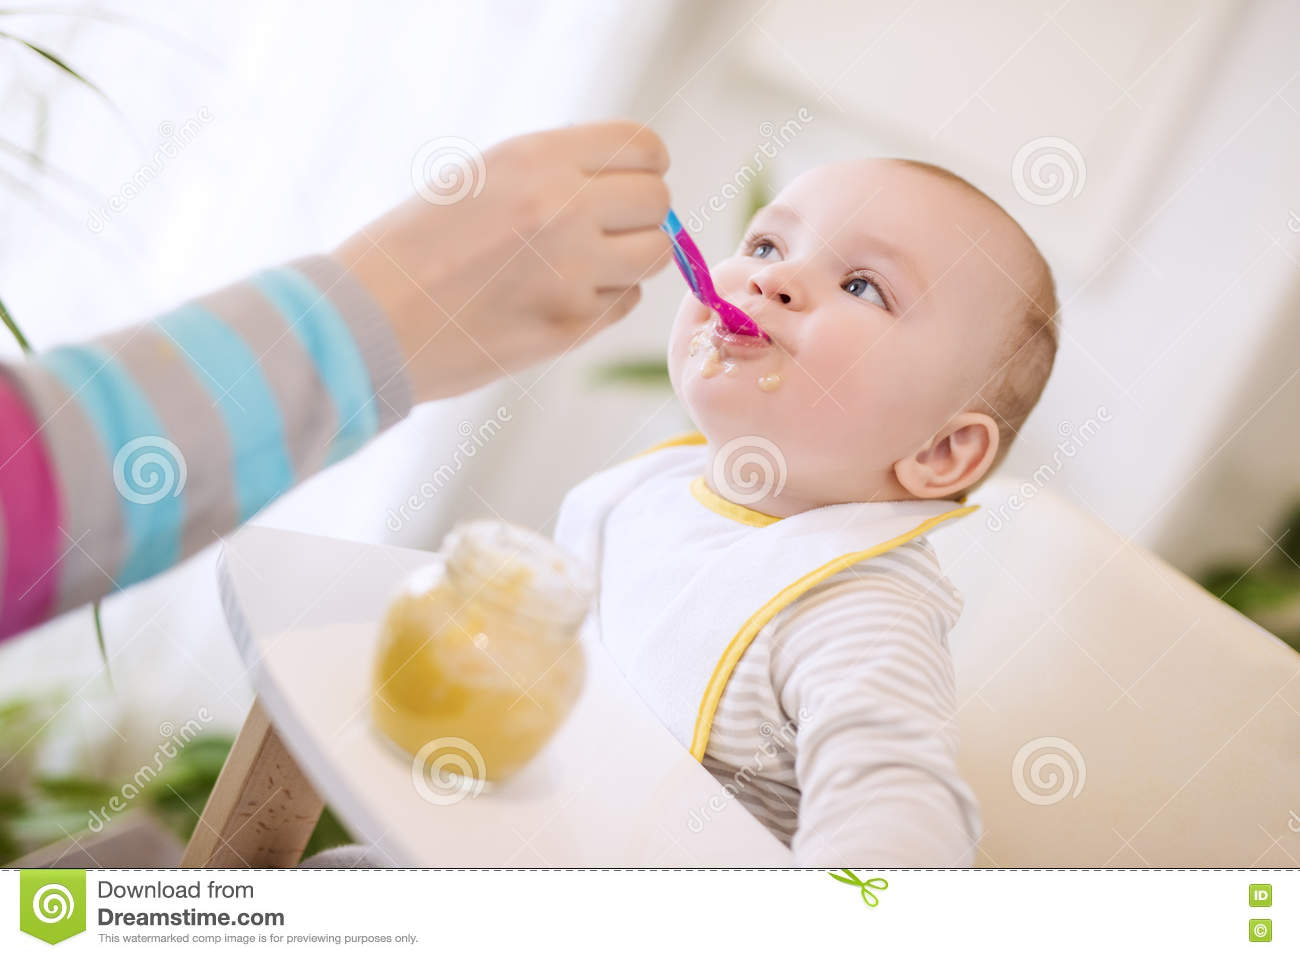 Baby Food Chair Baby Food Stock Photo Image 76569991